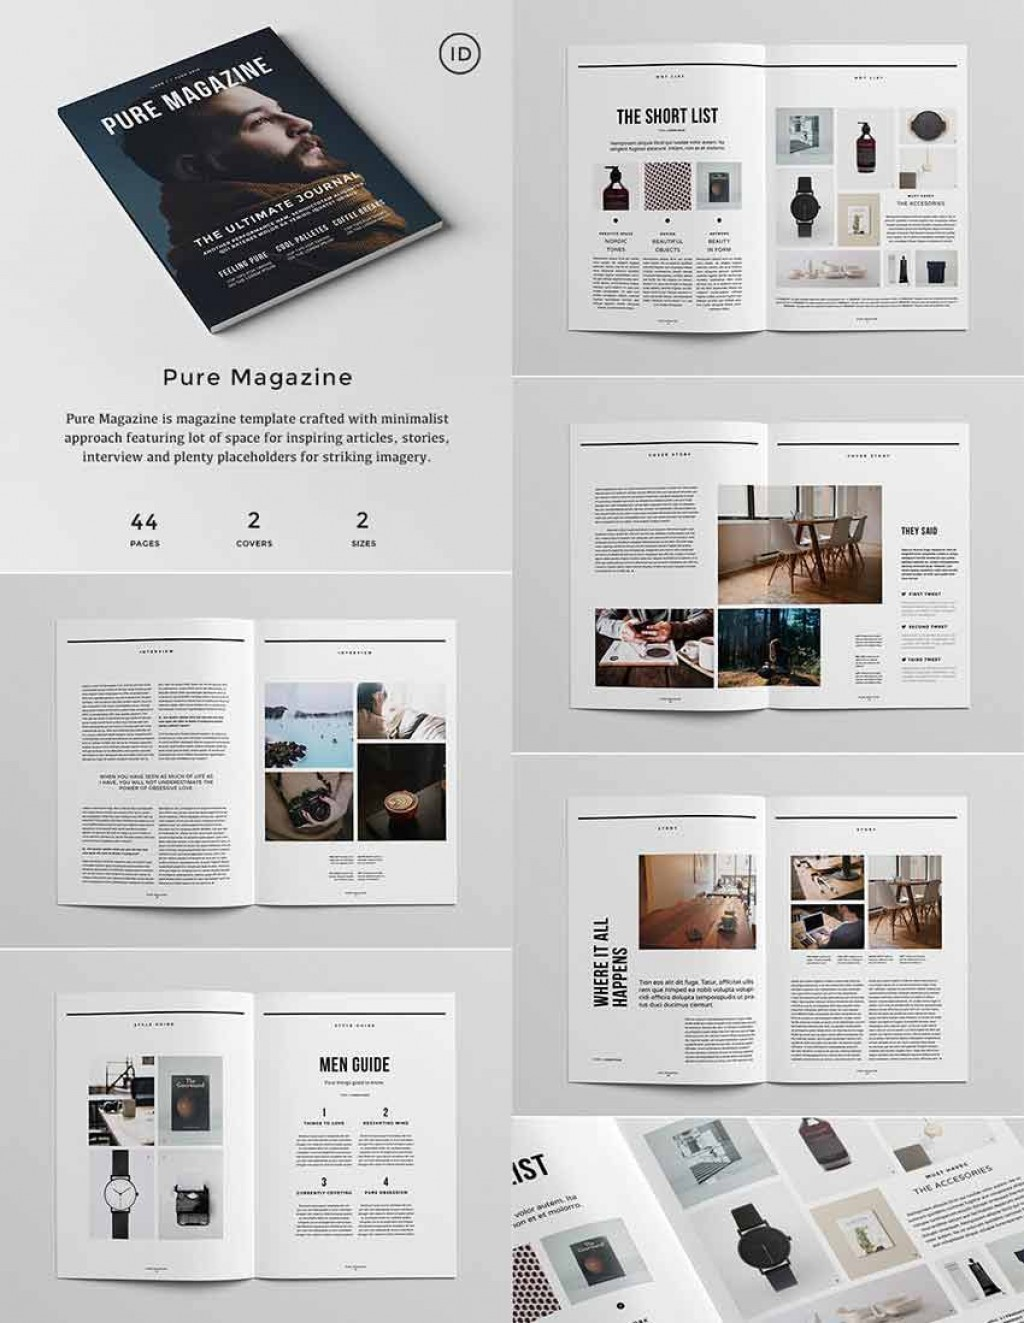 005 Wonderful Free Magazine Layout Template High Def  Templates For Word Microsoft PowerpointLarge